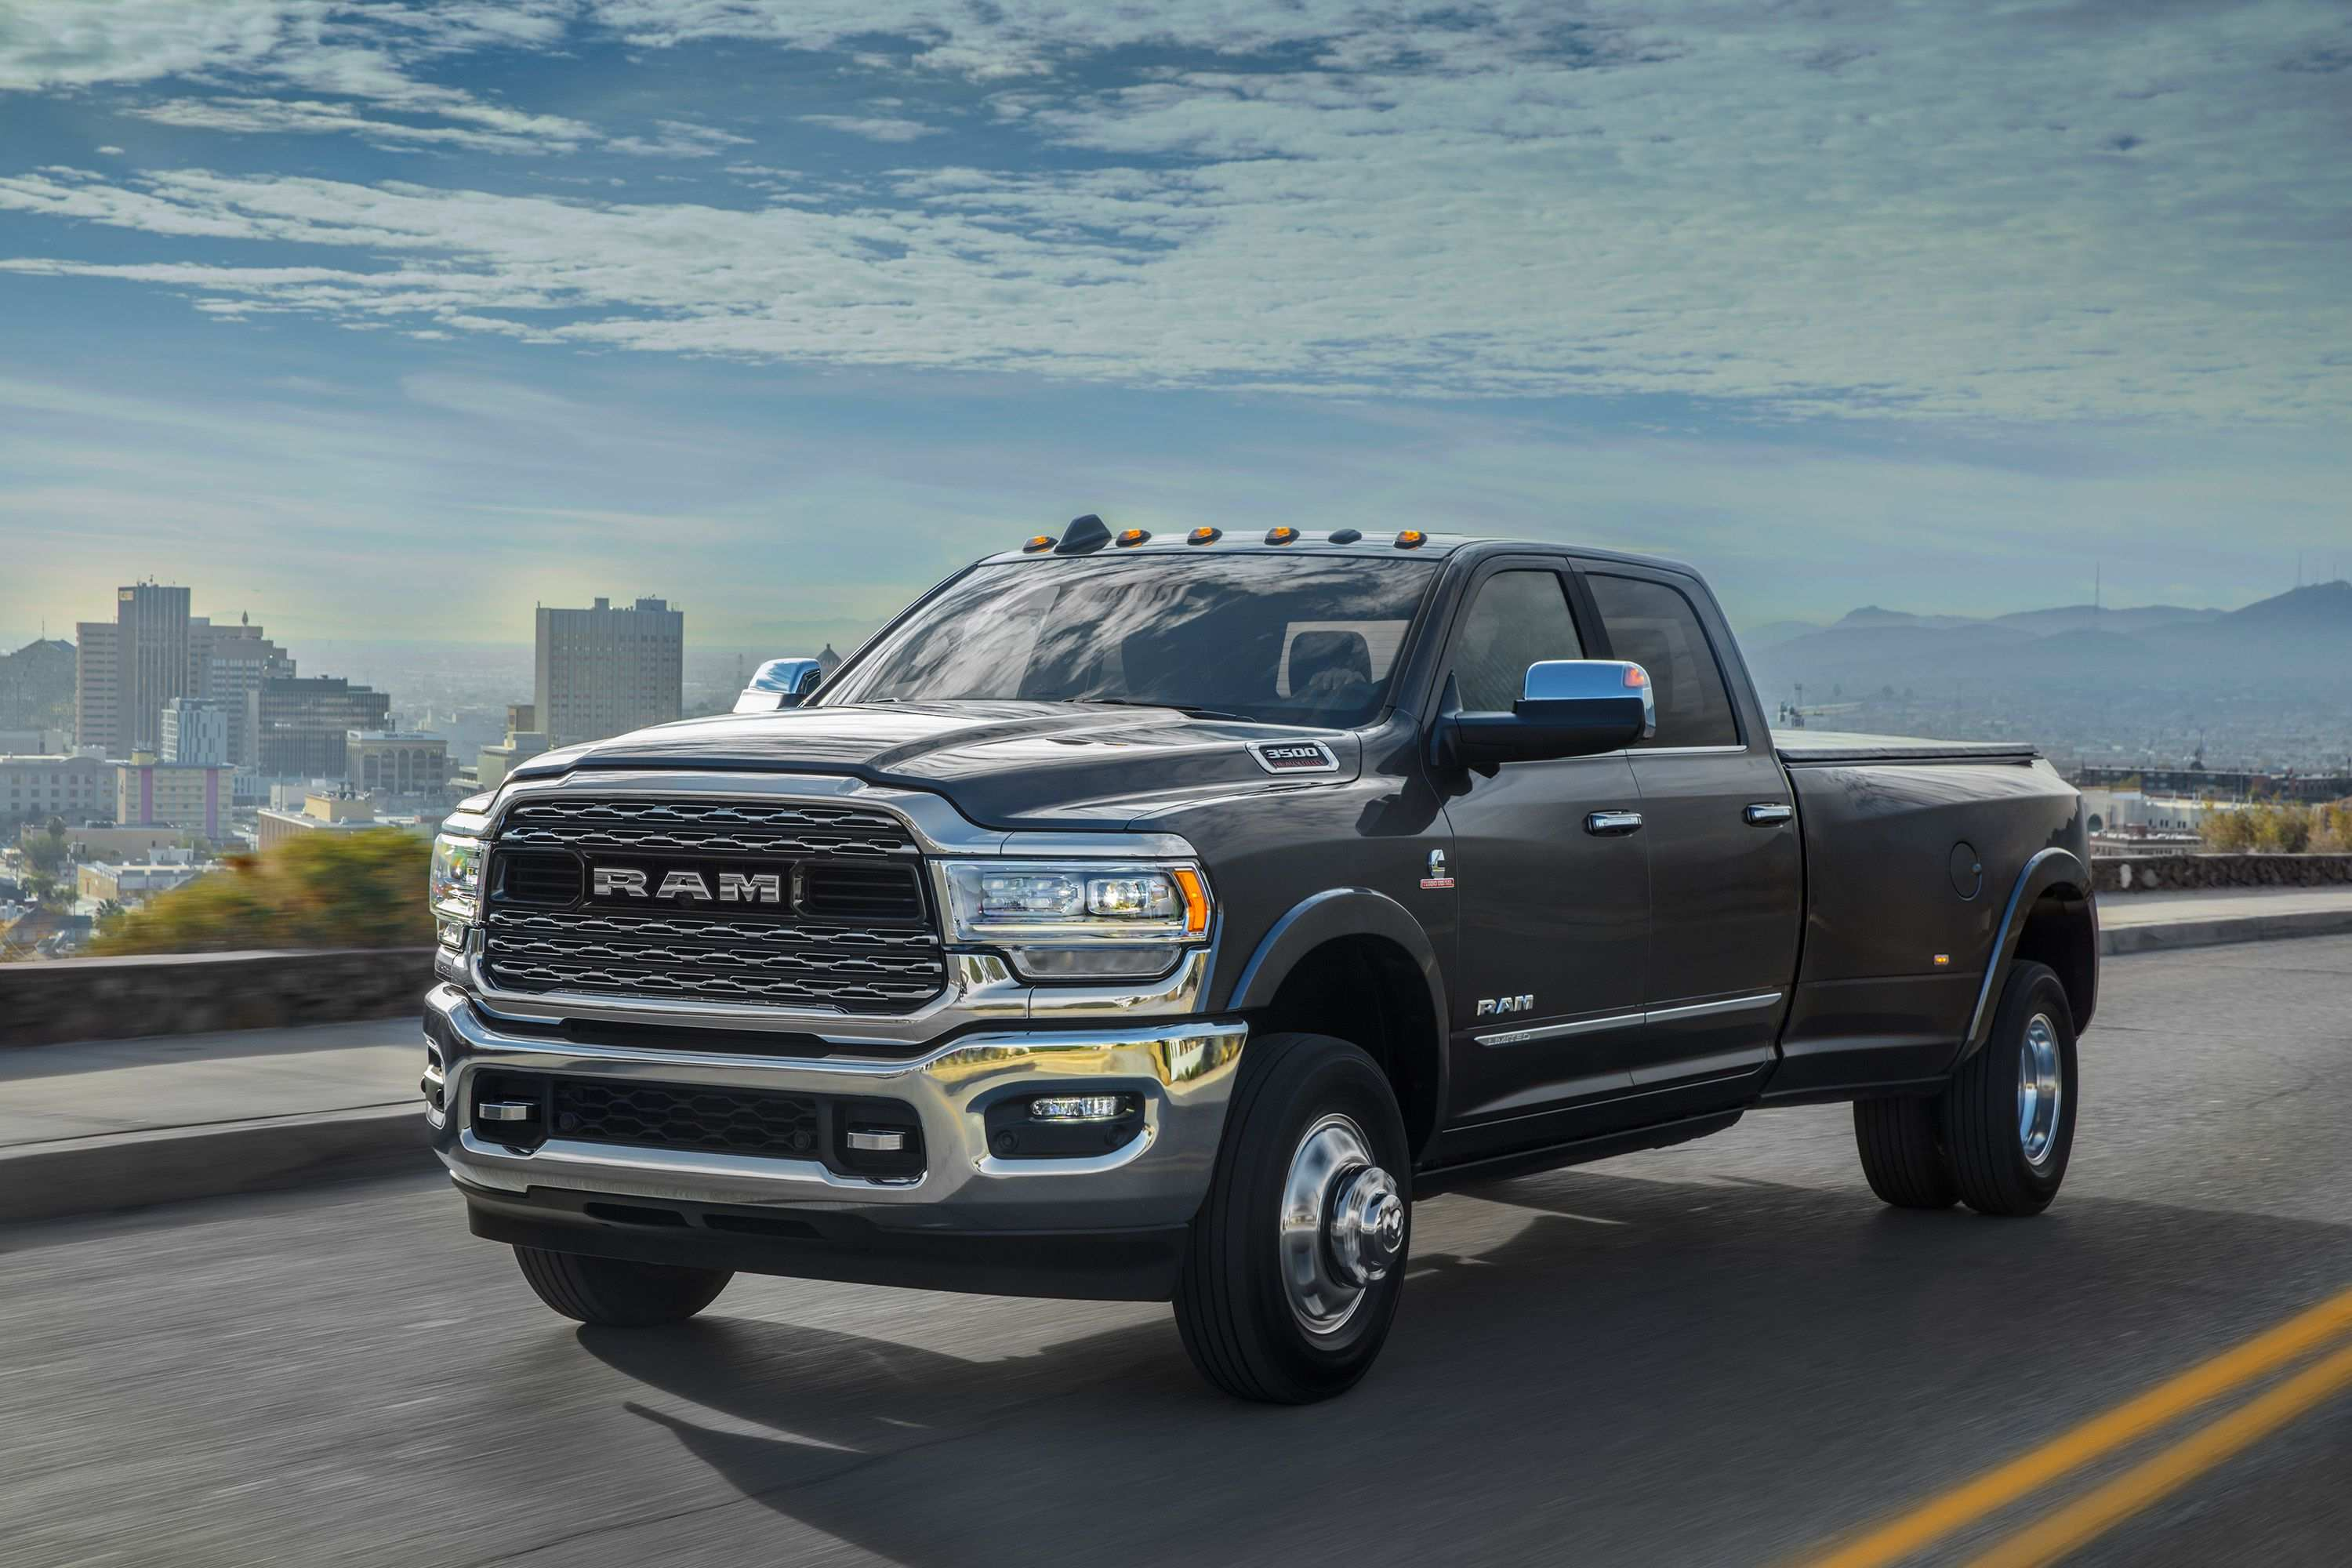 86 All New 2020 Dodge Ram 3500 New Review for 2020 Dodge Ram 3500